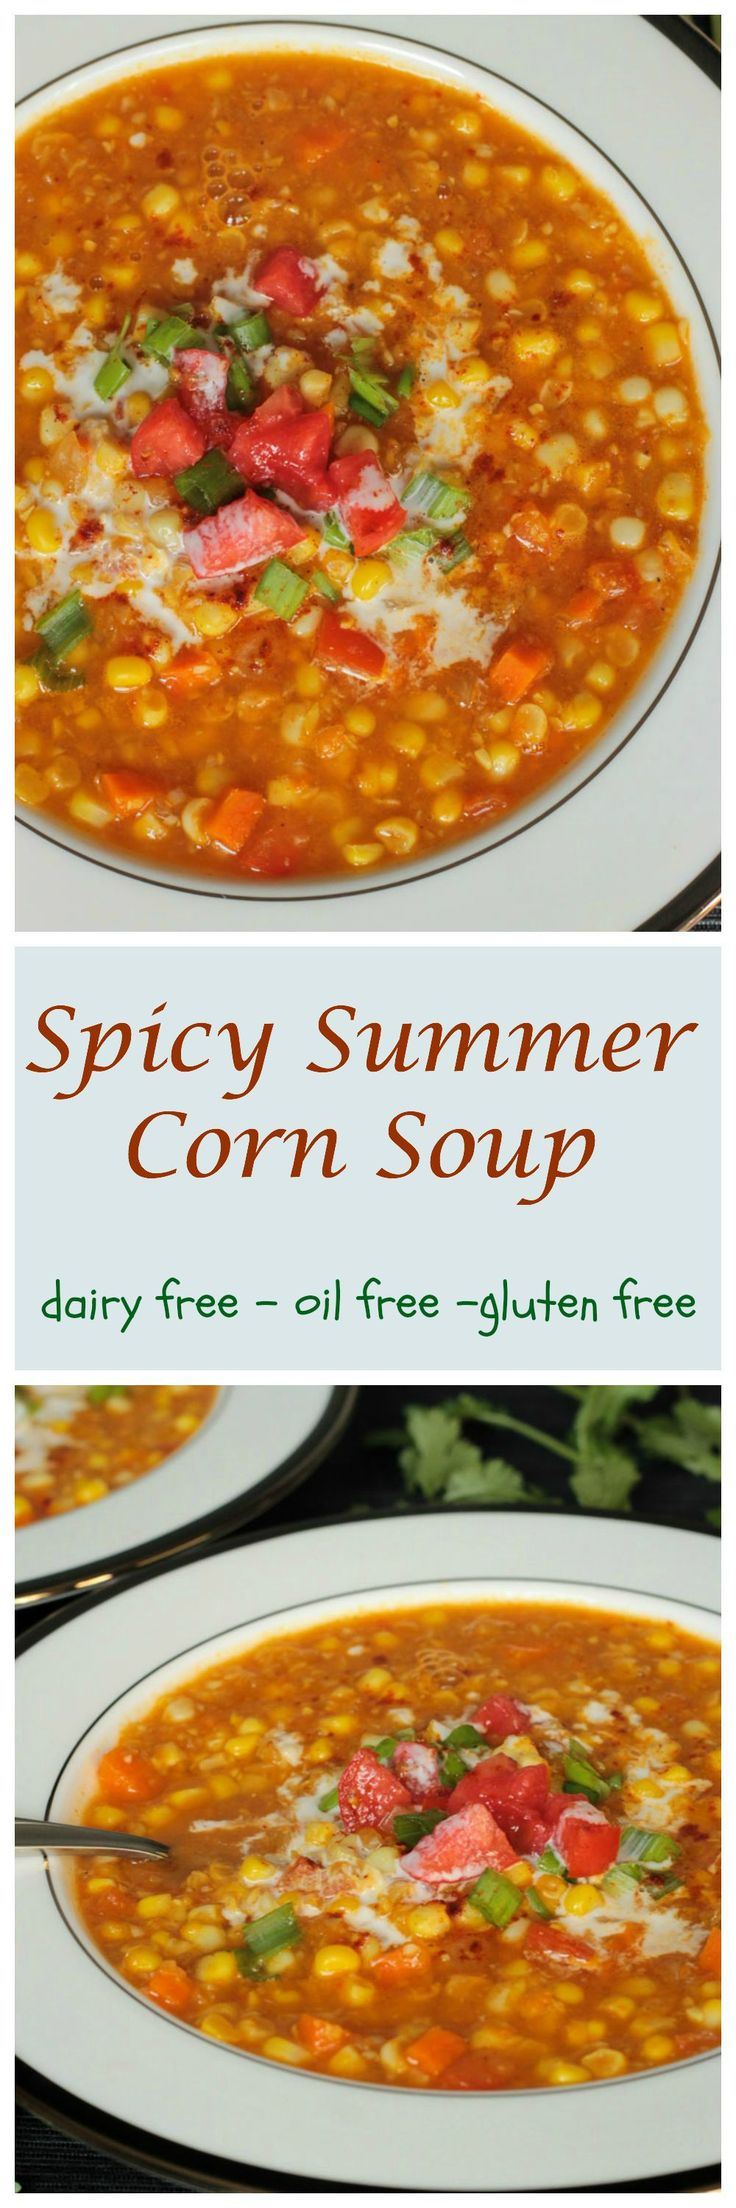 100+ Corn Soup Recipes on Pinterest | Chicken Corn Soup, Soup Recipes ...